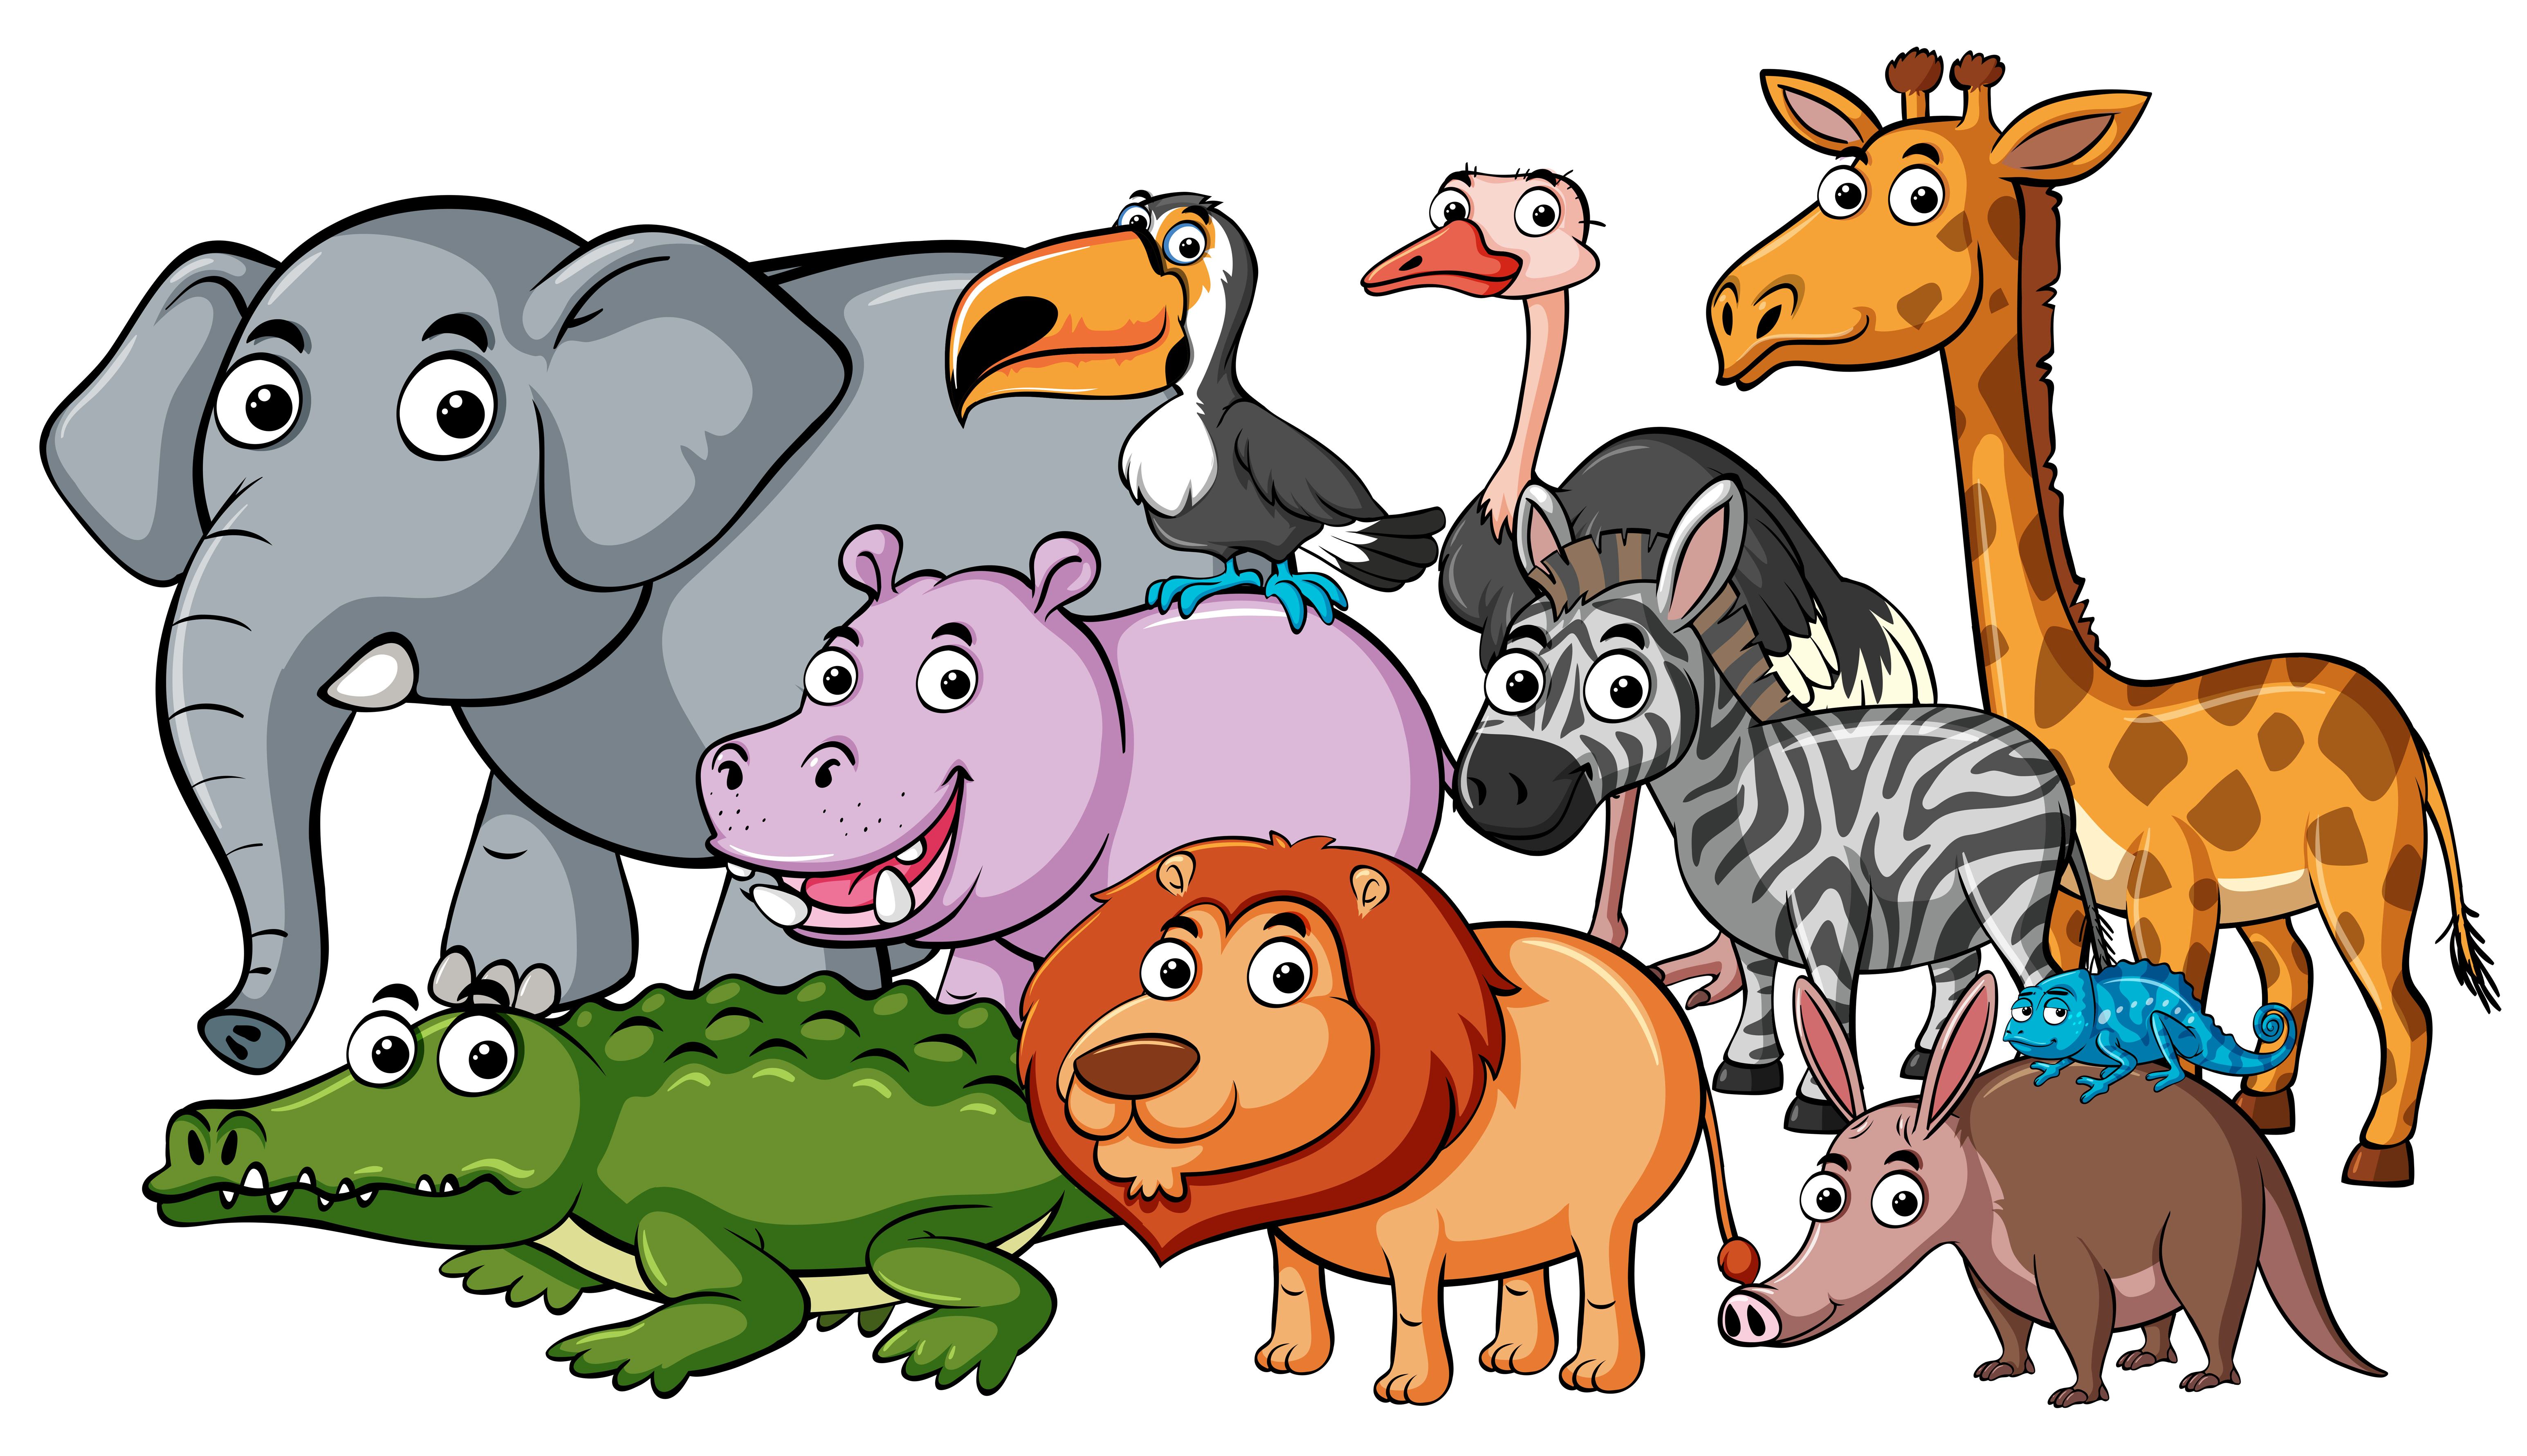 animals wild different together kinds wildlife vector clipart animal african safari graphics resources cartoon shutterstock farm vectors jungle